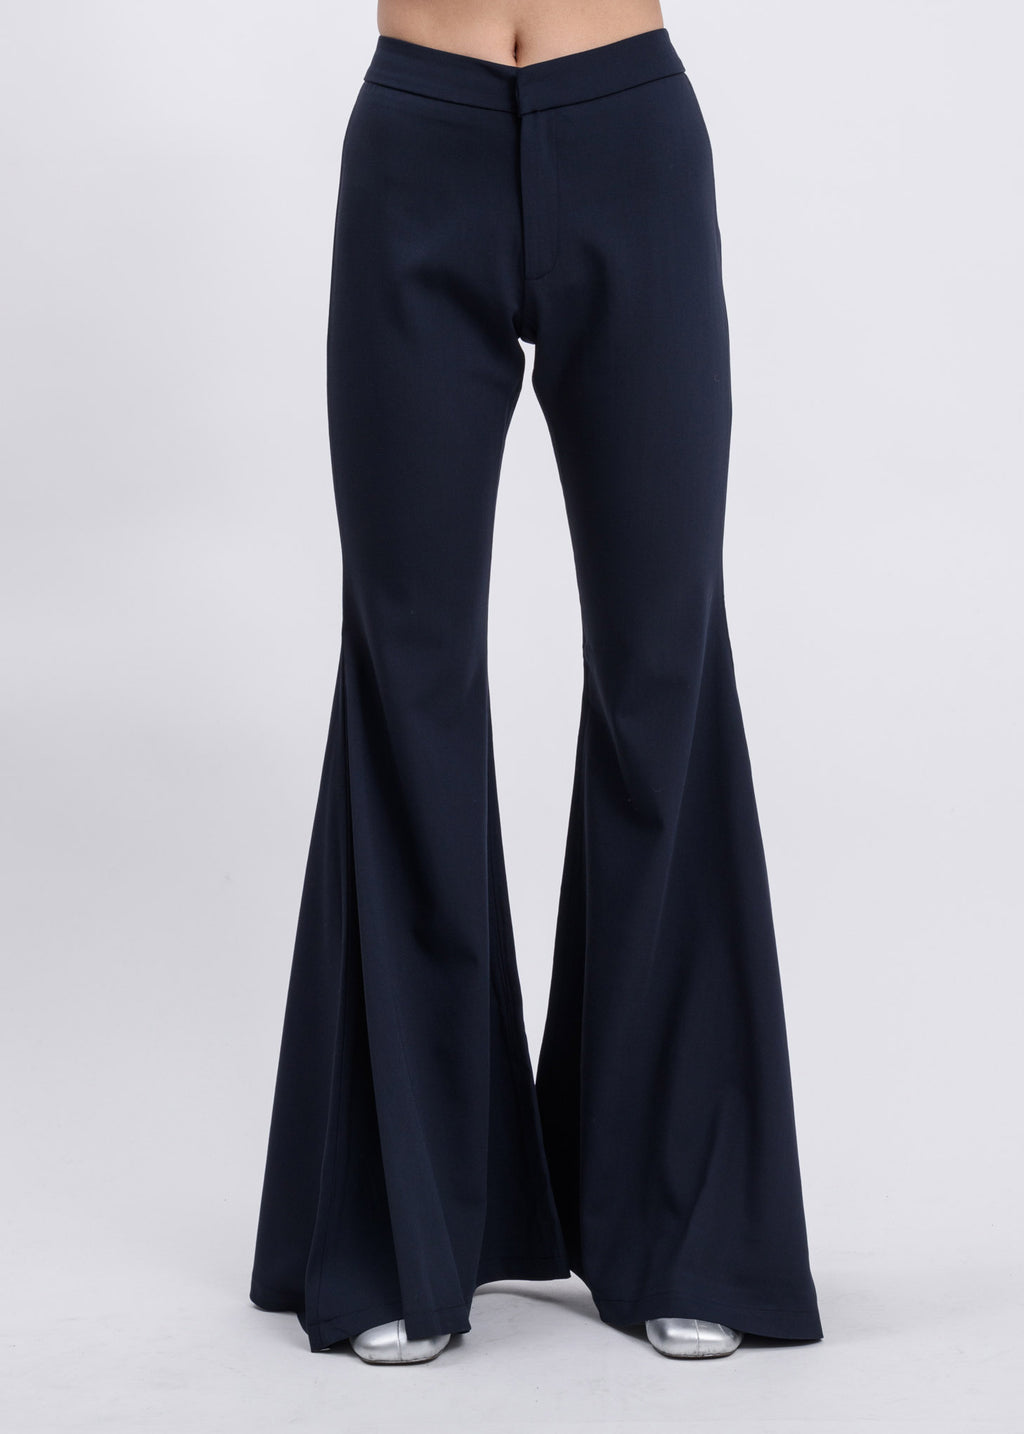 Blue Flare Trousers